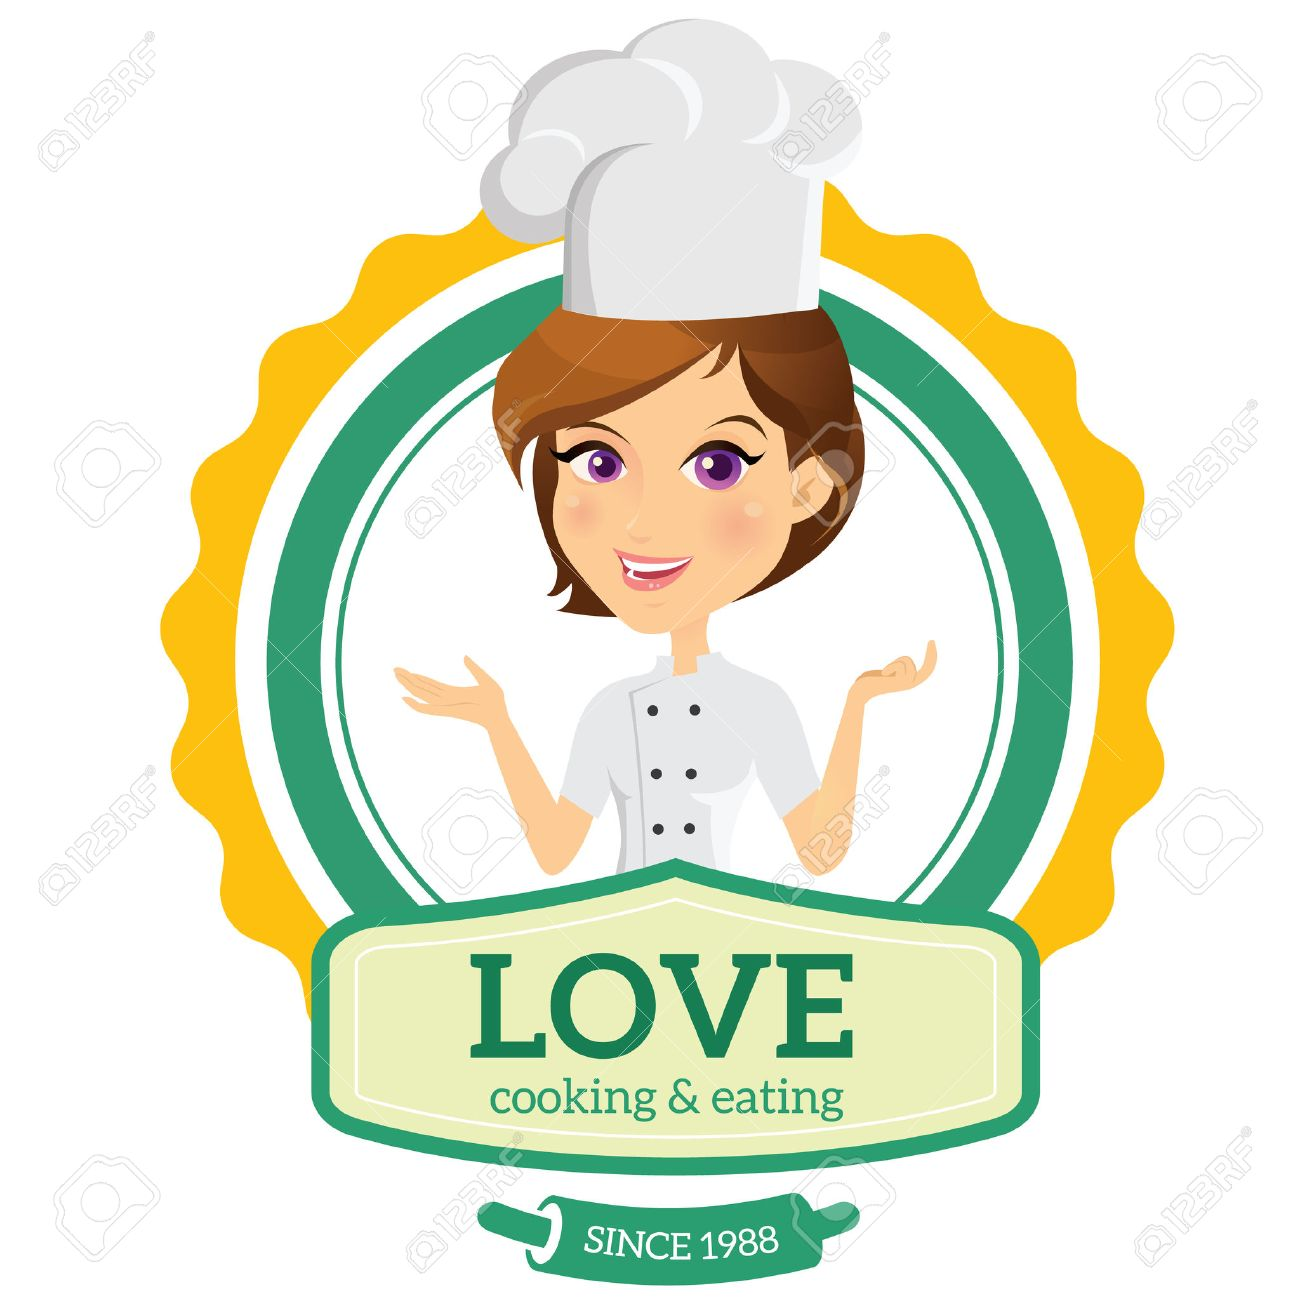 love cooking logo chef logo royalty free cliparts vectors and